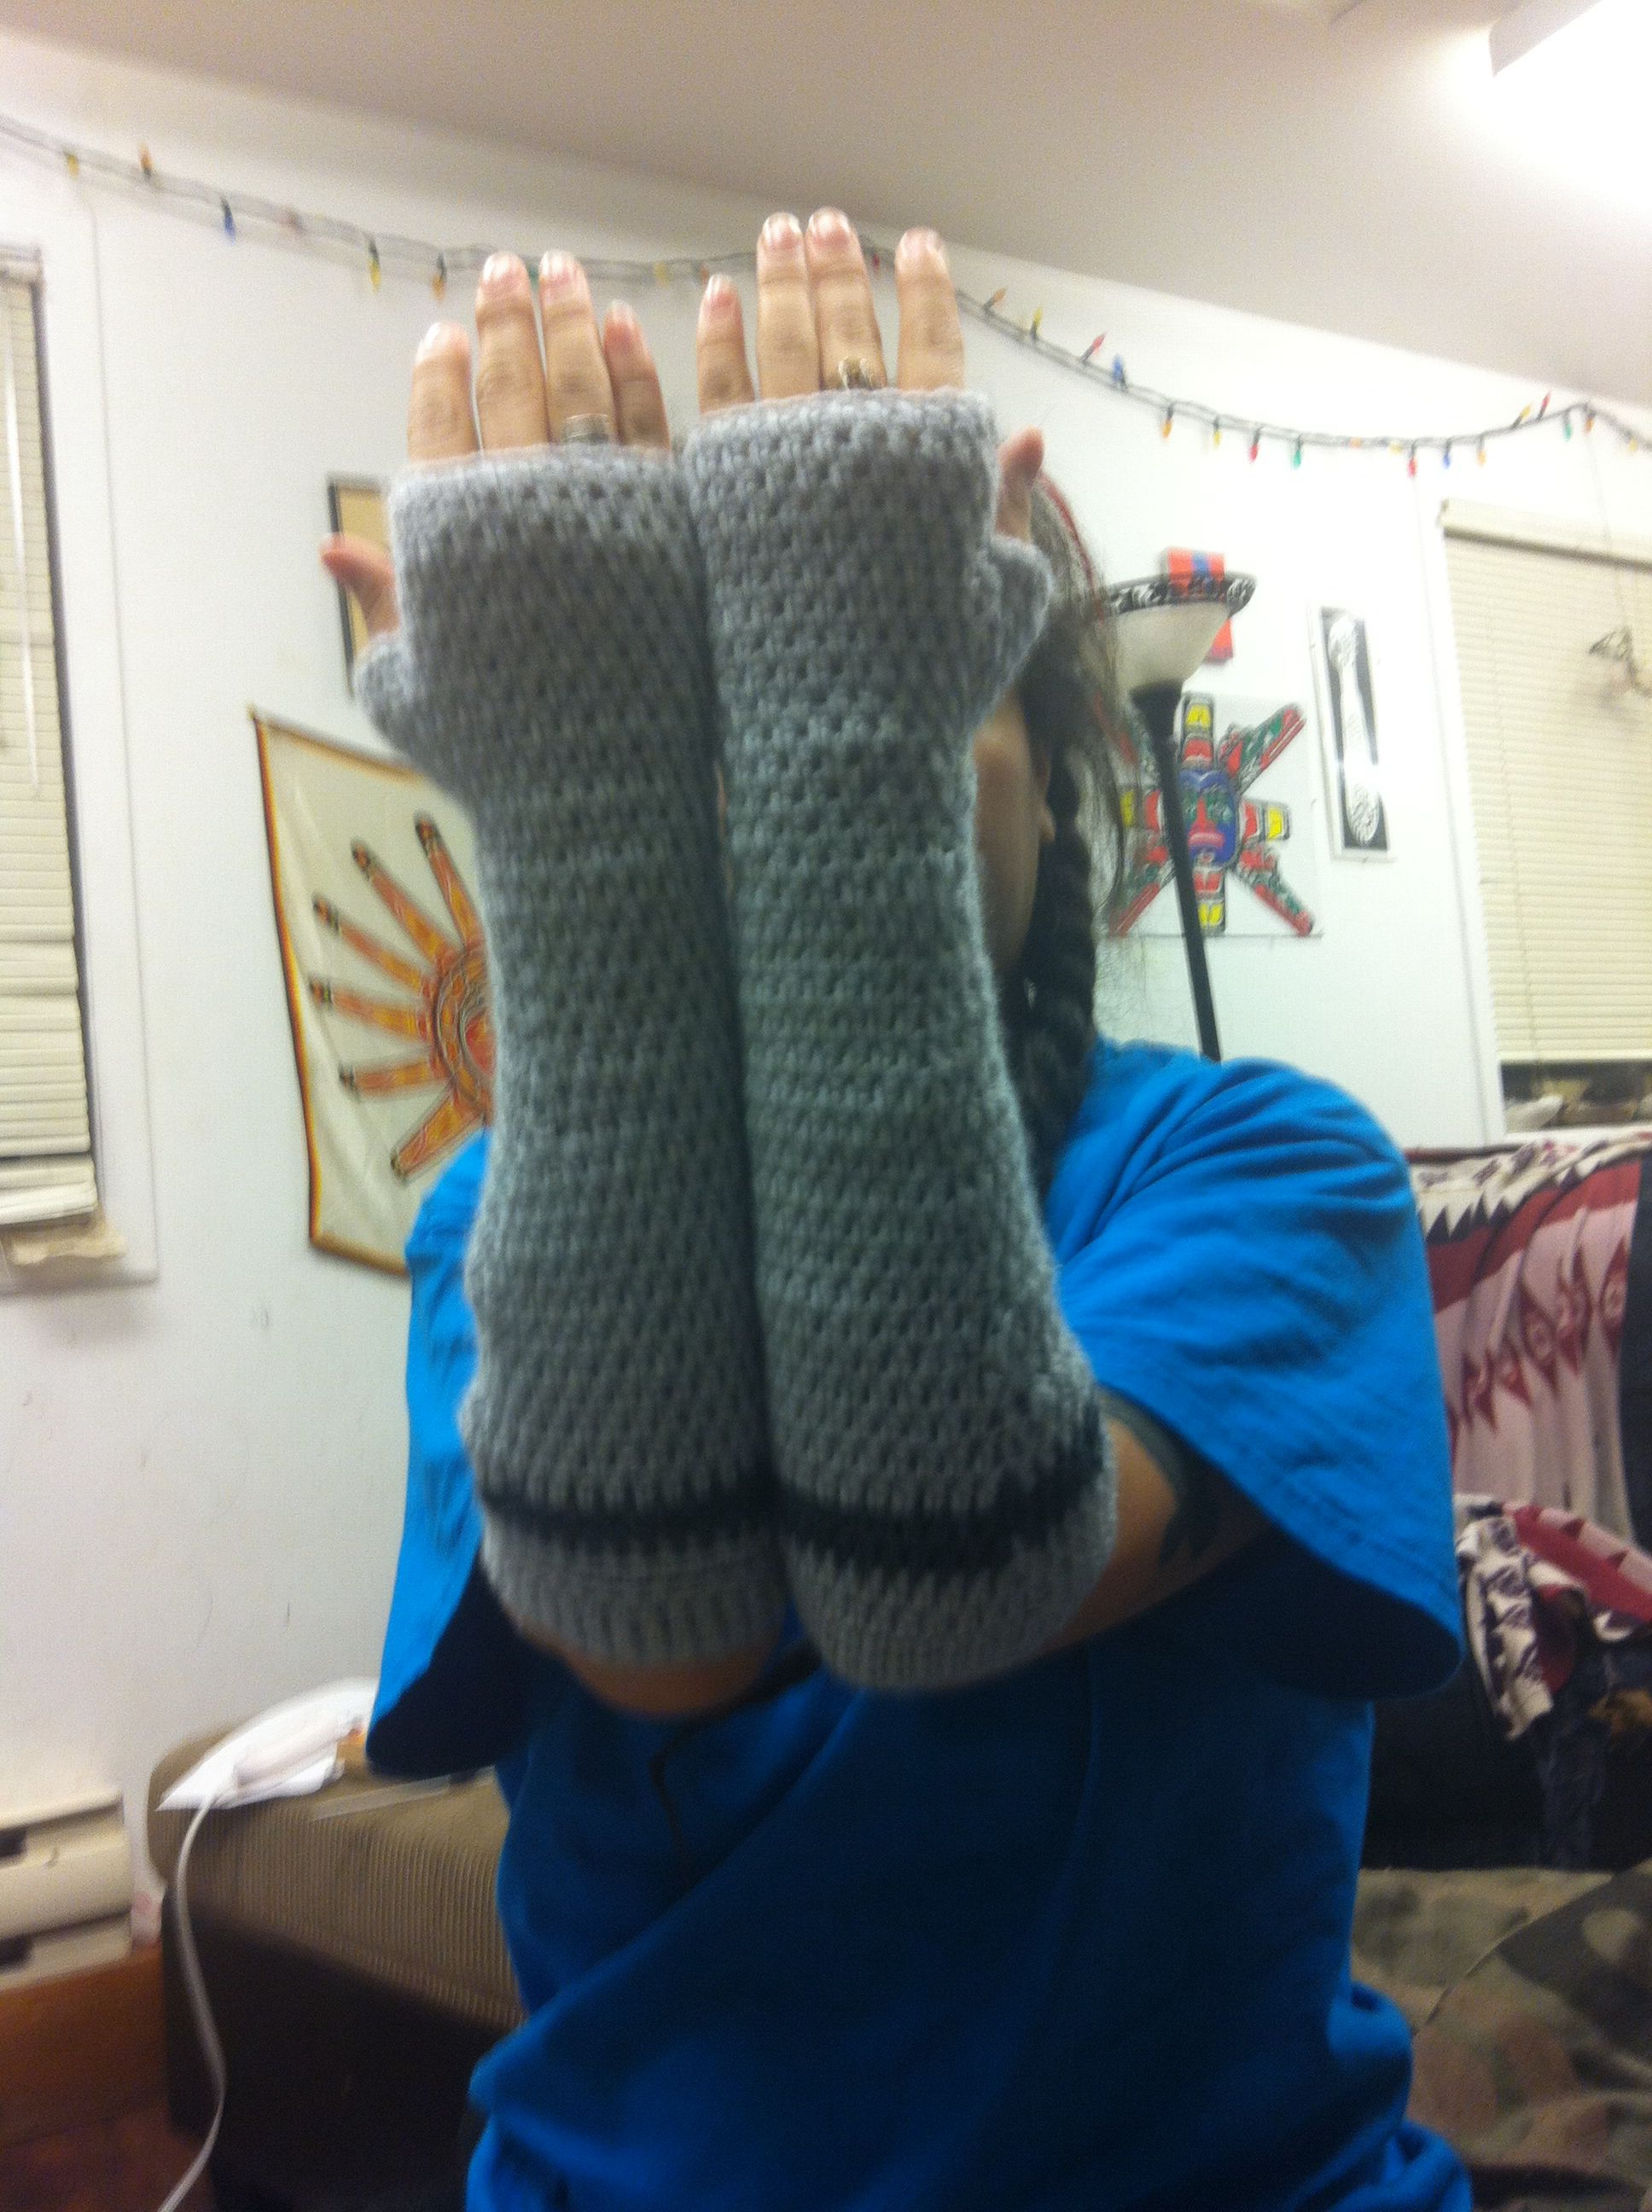 crochet arm warmers didn't use a pattern :) I'm super pleased with how they turned out